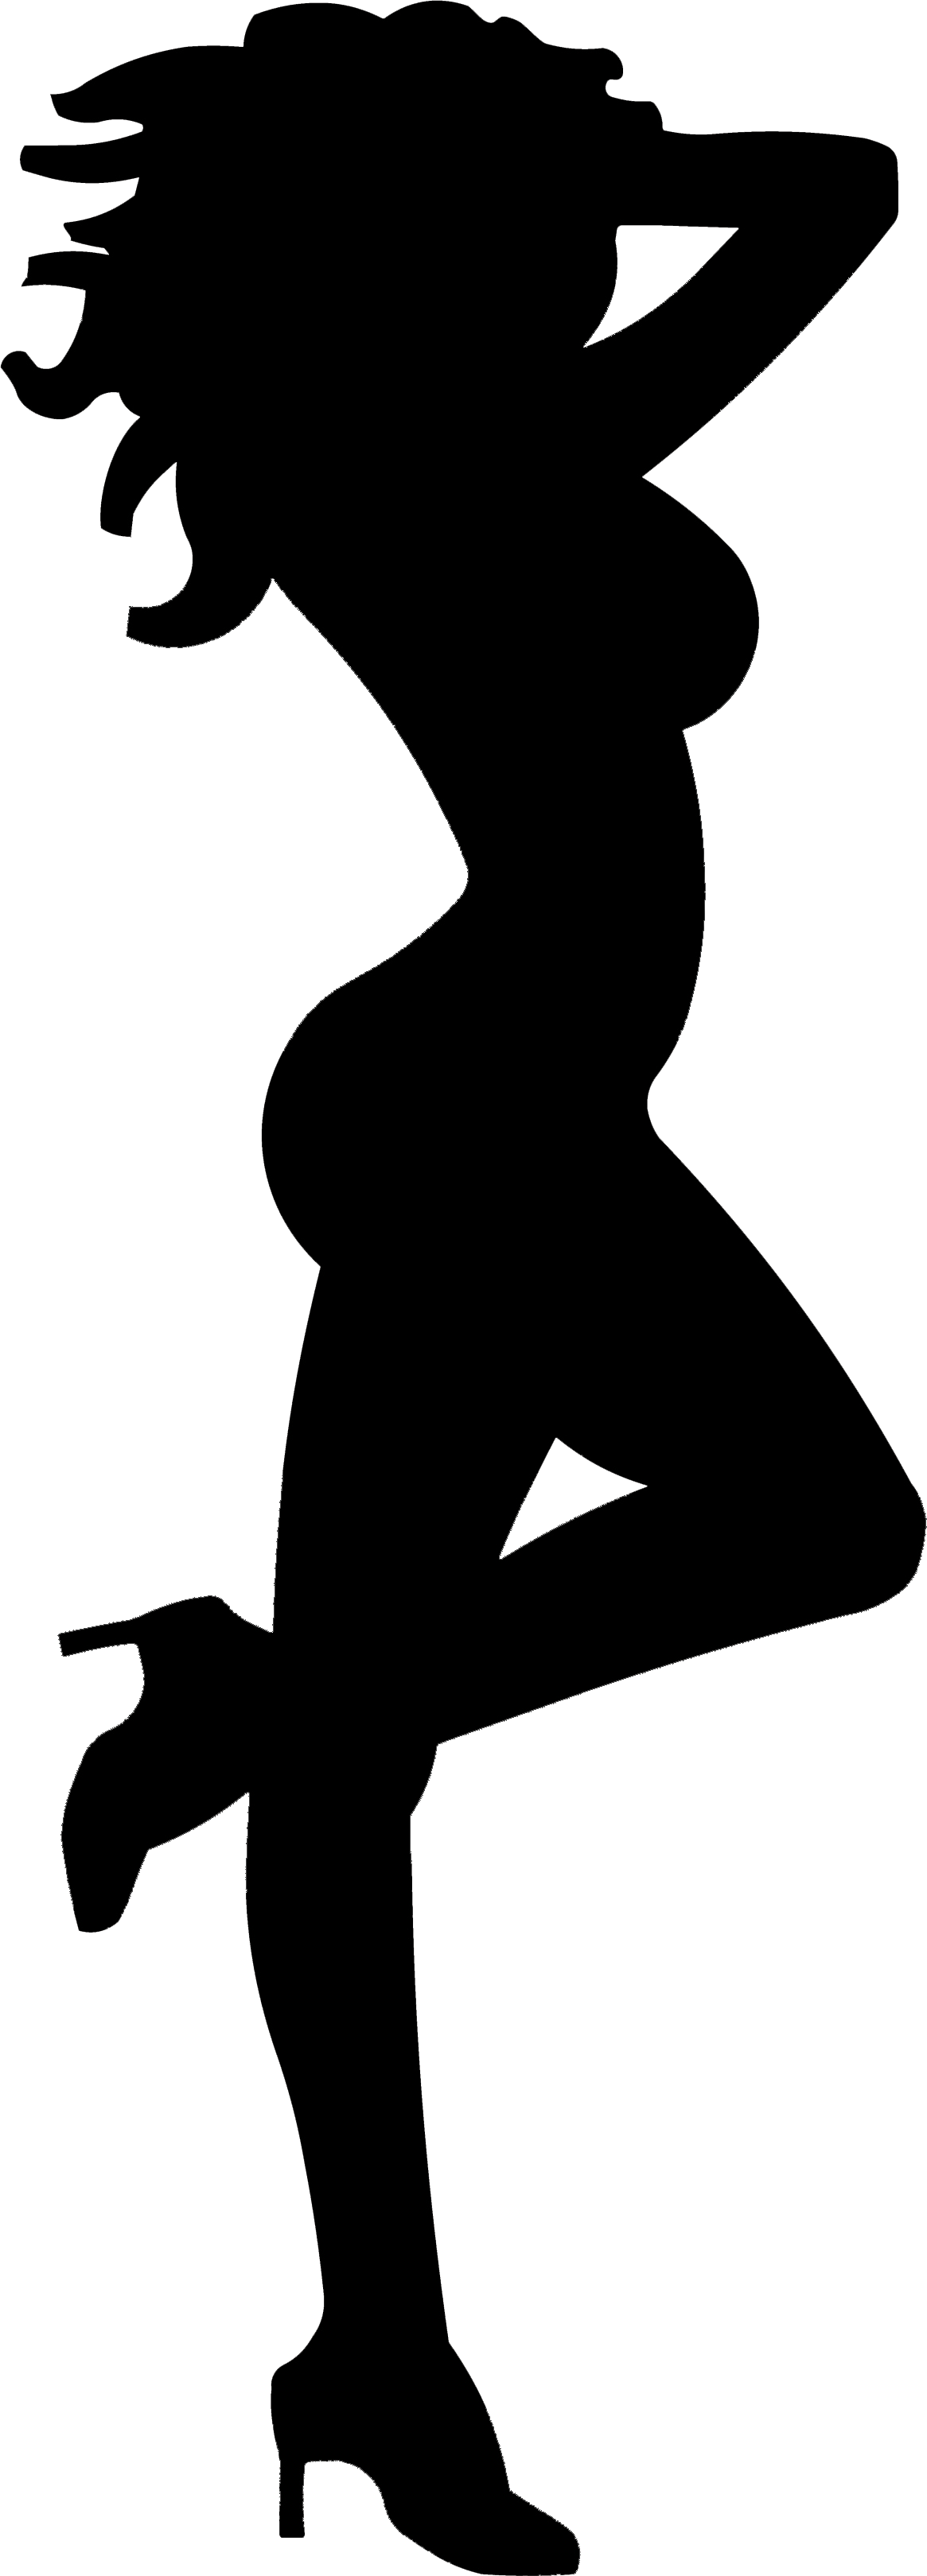 Waitress clipart silhouette, Waitress silhouette Transparent.